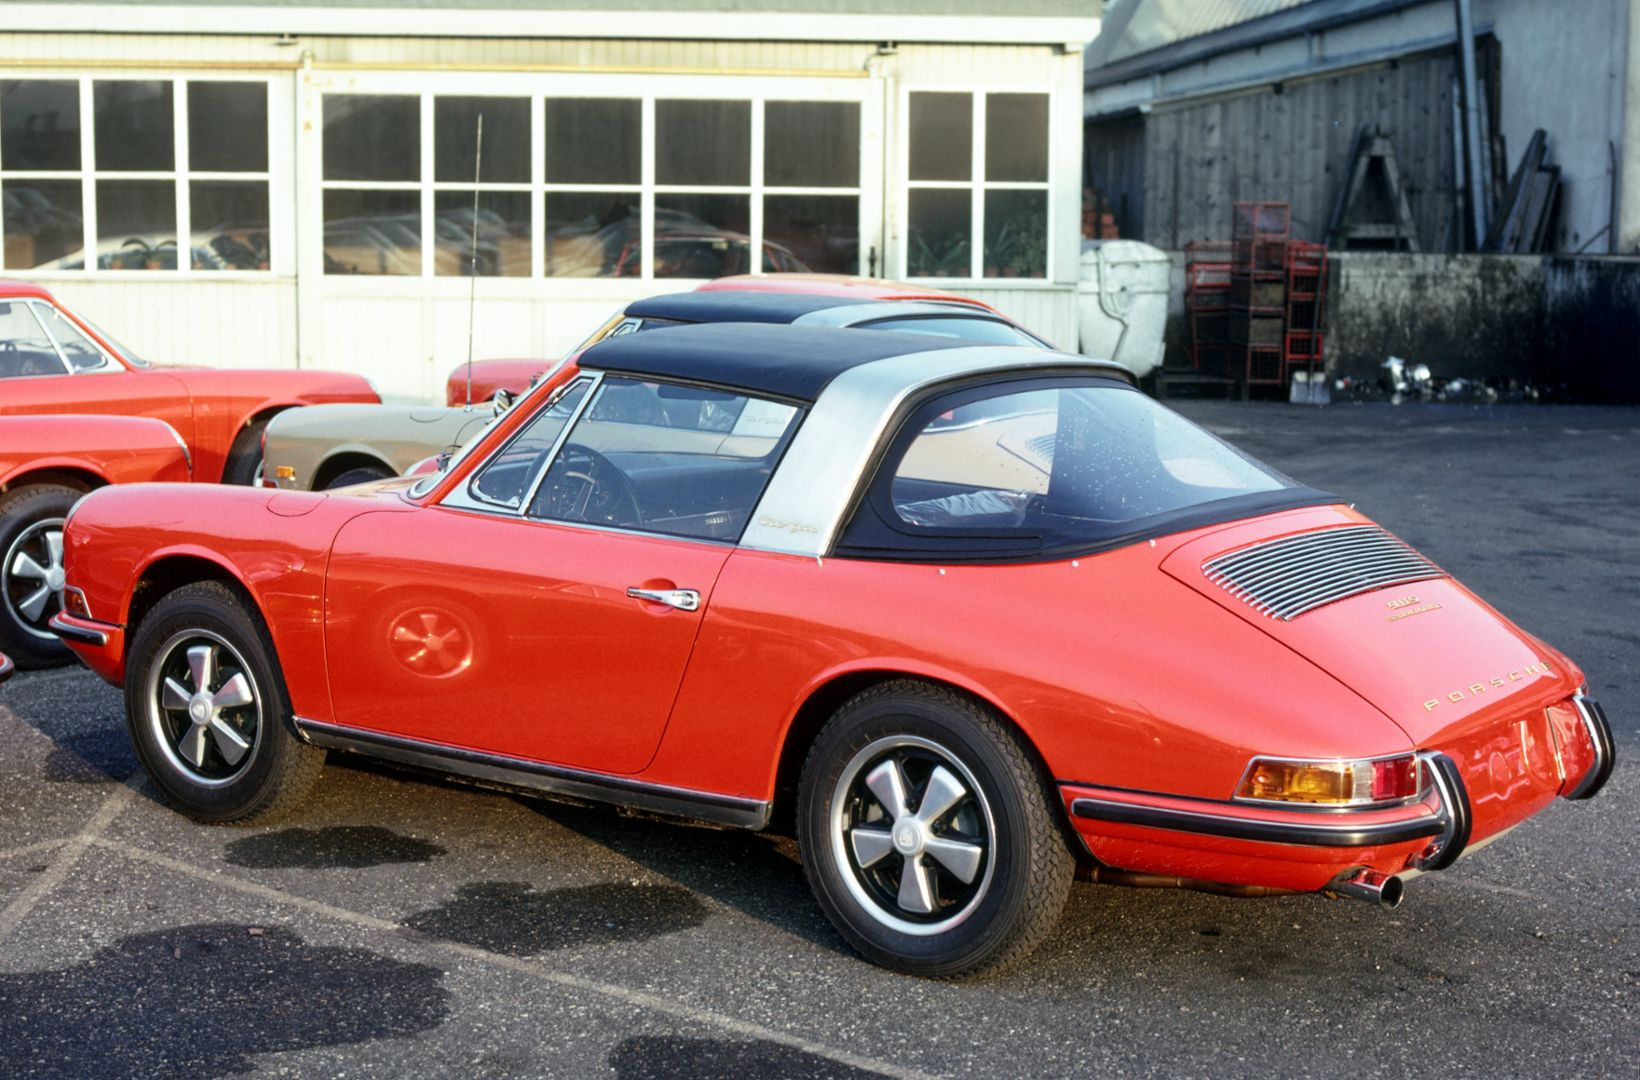 Porsche 911 S 2.0 Targa, 1968, Corporate Archives Porsche AG